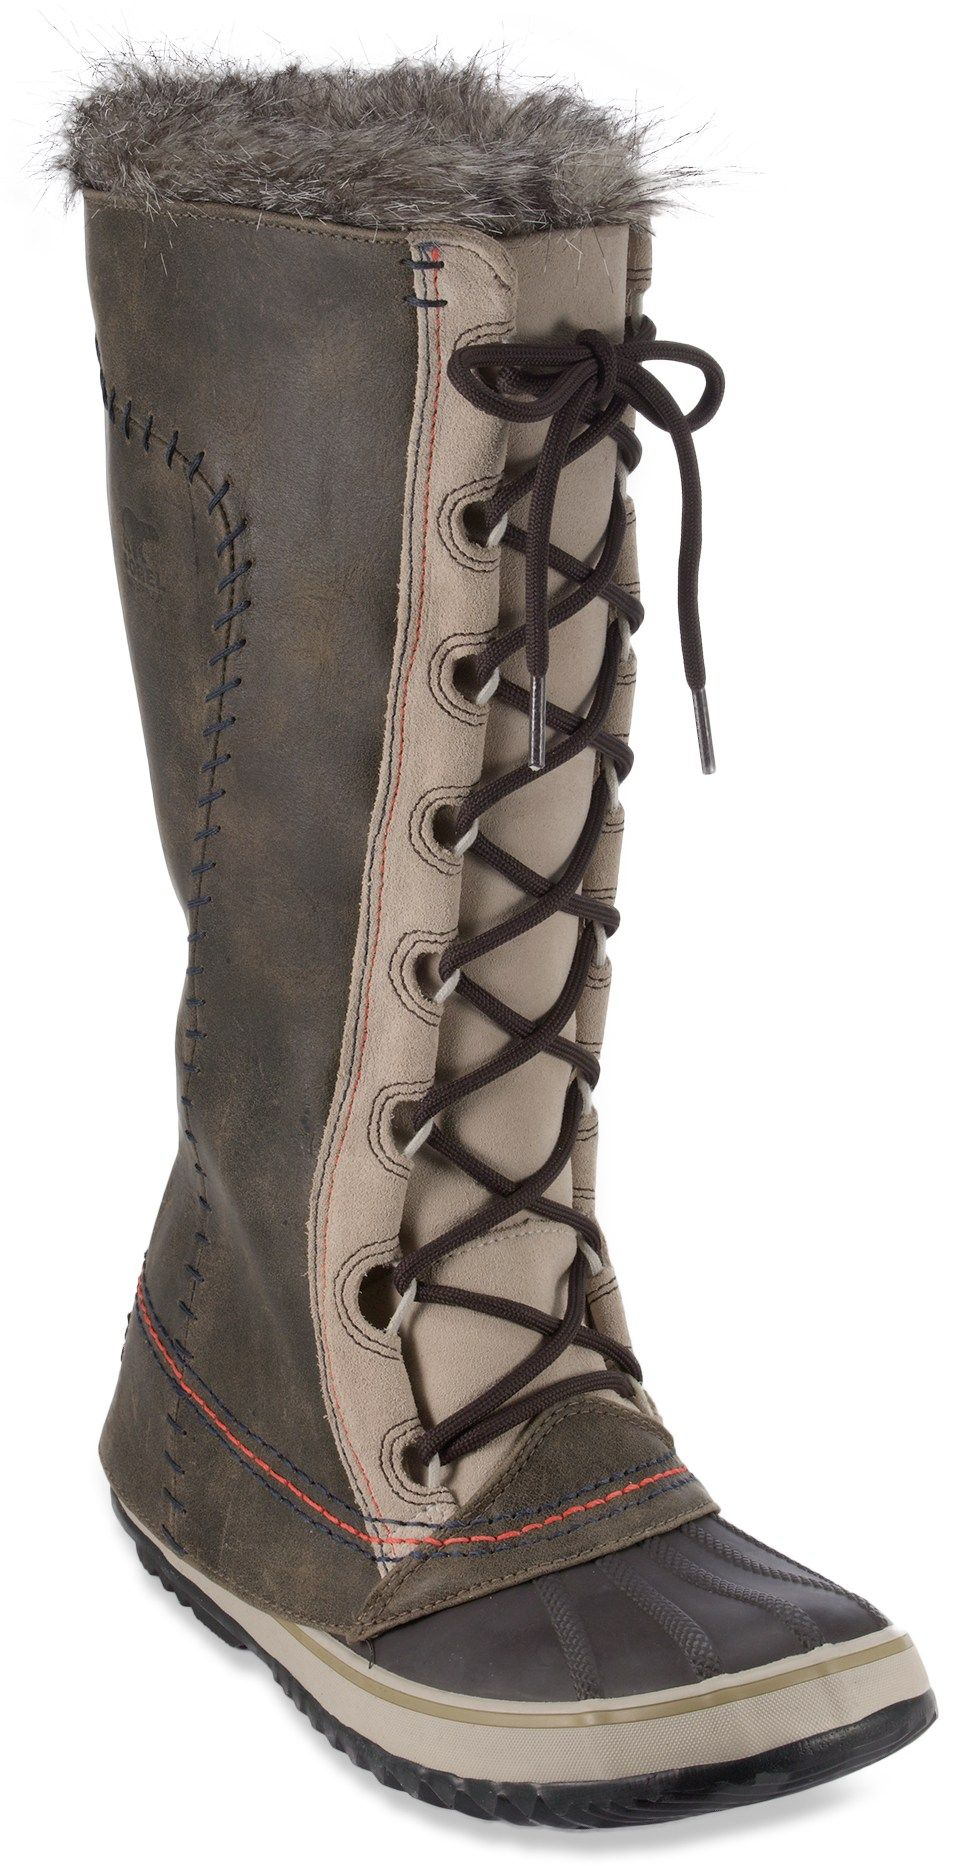 Sorel Cate The Great Deco Winter Boots Women S Rei Co Op Winter Boots Women Boots Winter Boots